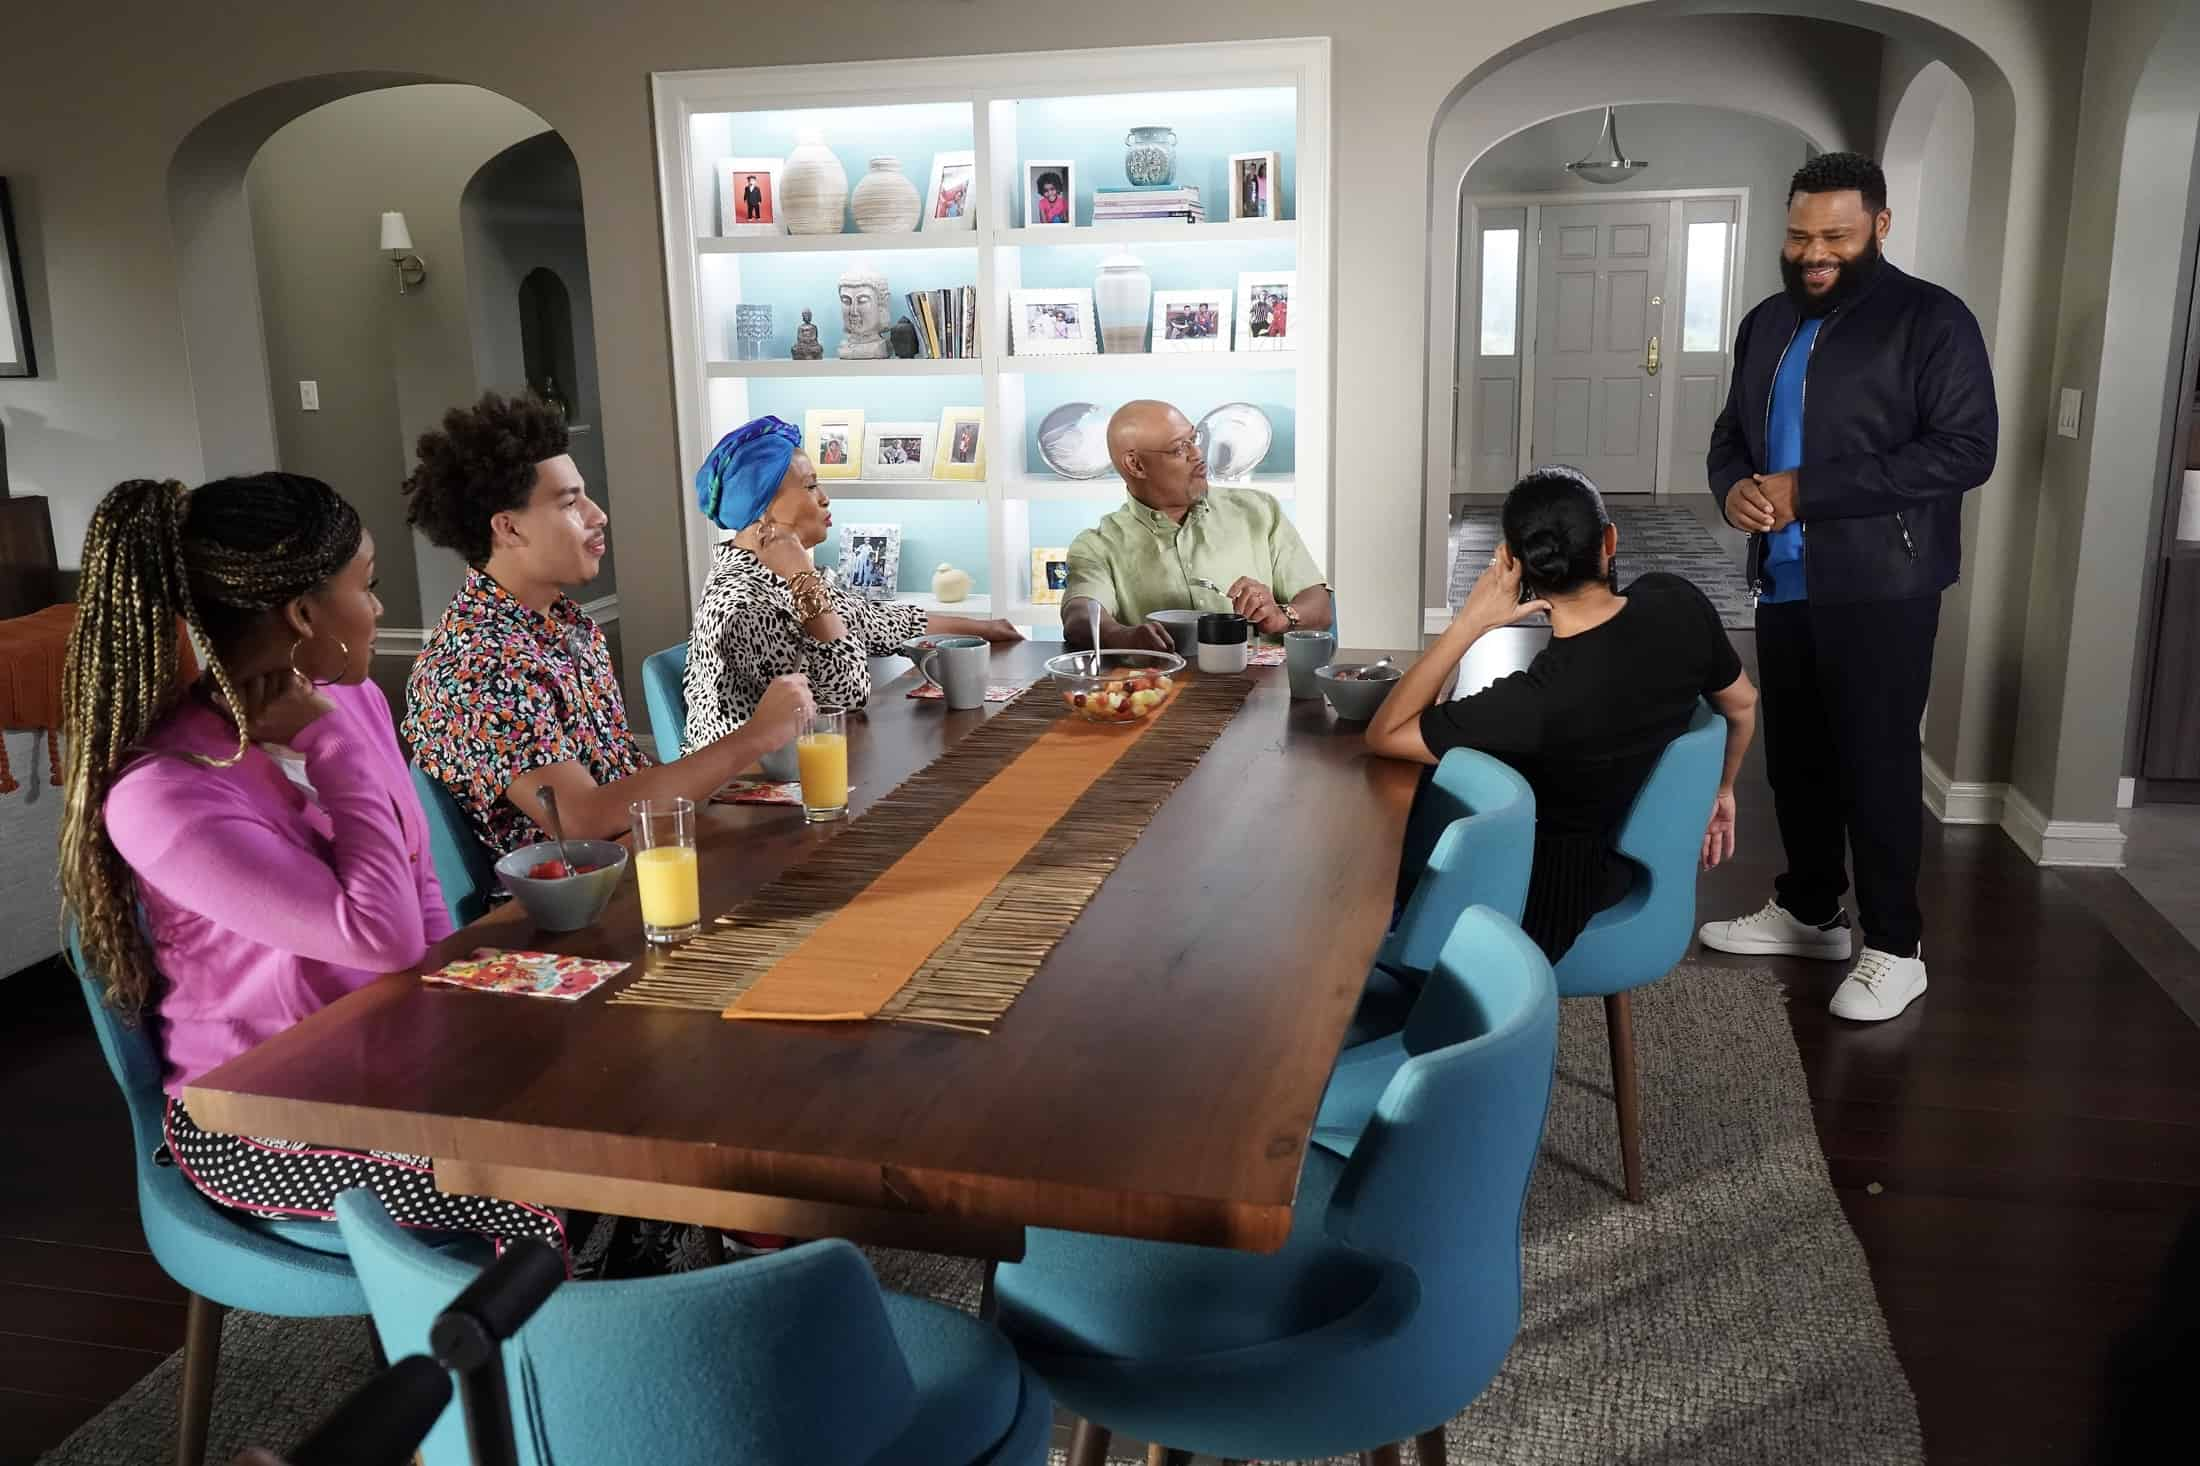 """BLACK-ISH Season 7 Episode 21 - """"Urban Legend"""" – Dre feels pigeonholed to the urban marketing team at Stevens & Lido and realizes he needs to make some big career changes. Boyz II Men stop by the office to help out the team with a SoFi campaign pitch.  Meanwhile, Junior has to deal with the twins who are overstaying their welcome at his and Olivia's apartment on the season finale of """"black-ish,"""" TUESDAY, MAY 18 (9:00-9:30 p.m. EDT), on ABC. (ABC/Richard Cartwright) MARCUS SCRIBNER, JENIFER LEWIS, LAURENCE FISHBURNE, ANTHONY ANDERSON"""